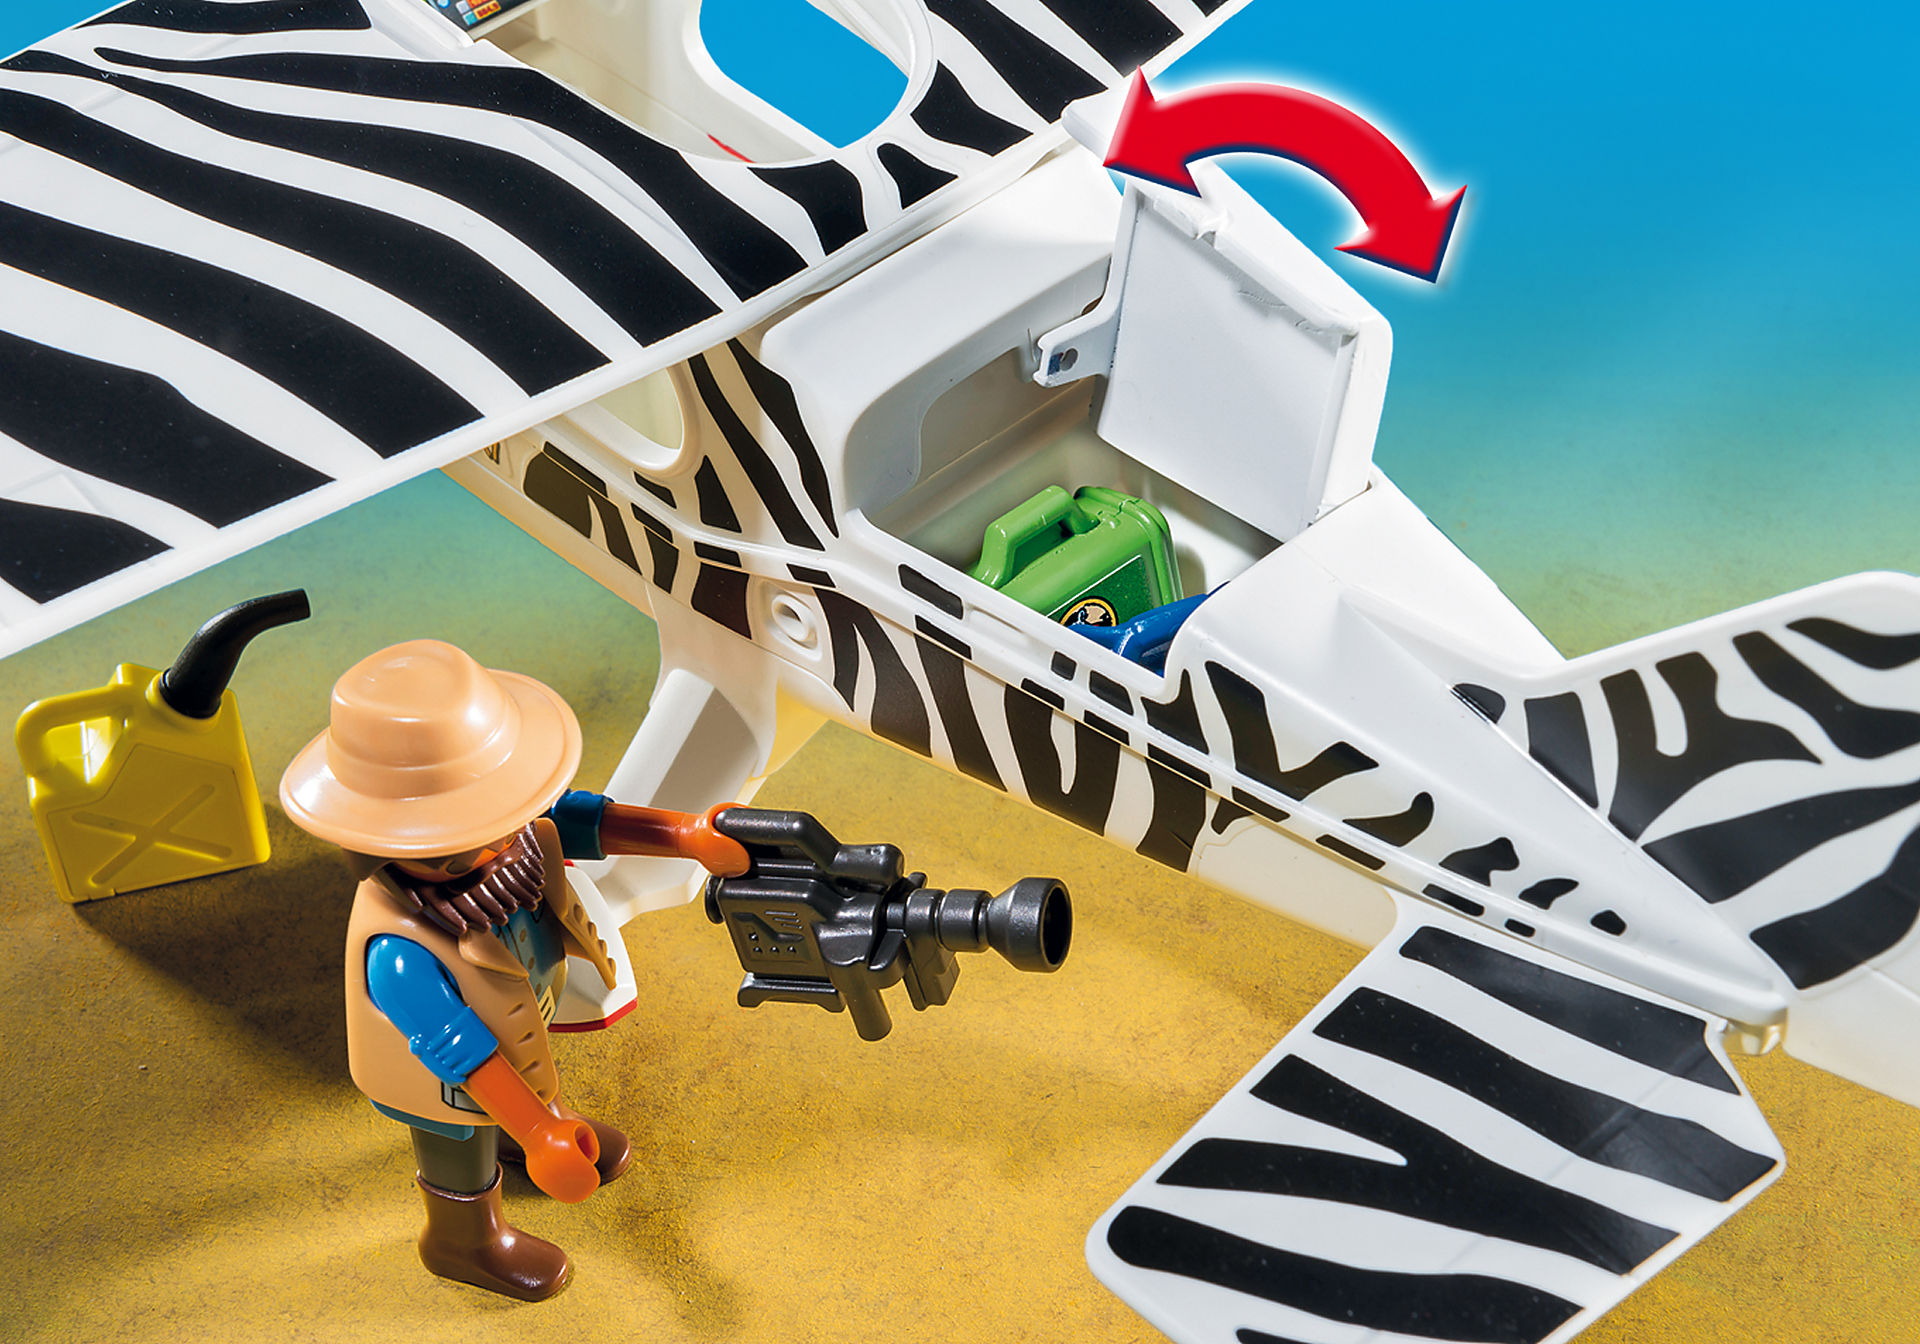 http://media.playmobil.com/i/playmobil/6938_product_extra1/Samolot safari